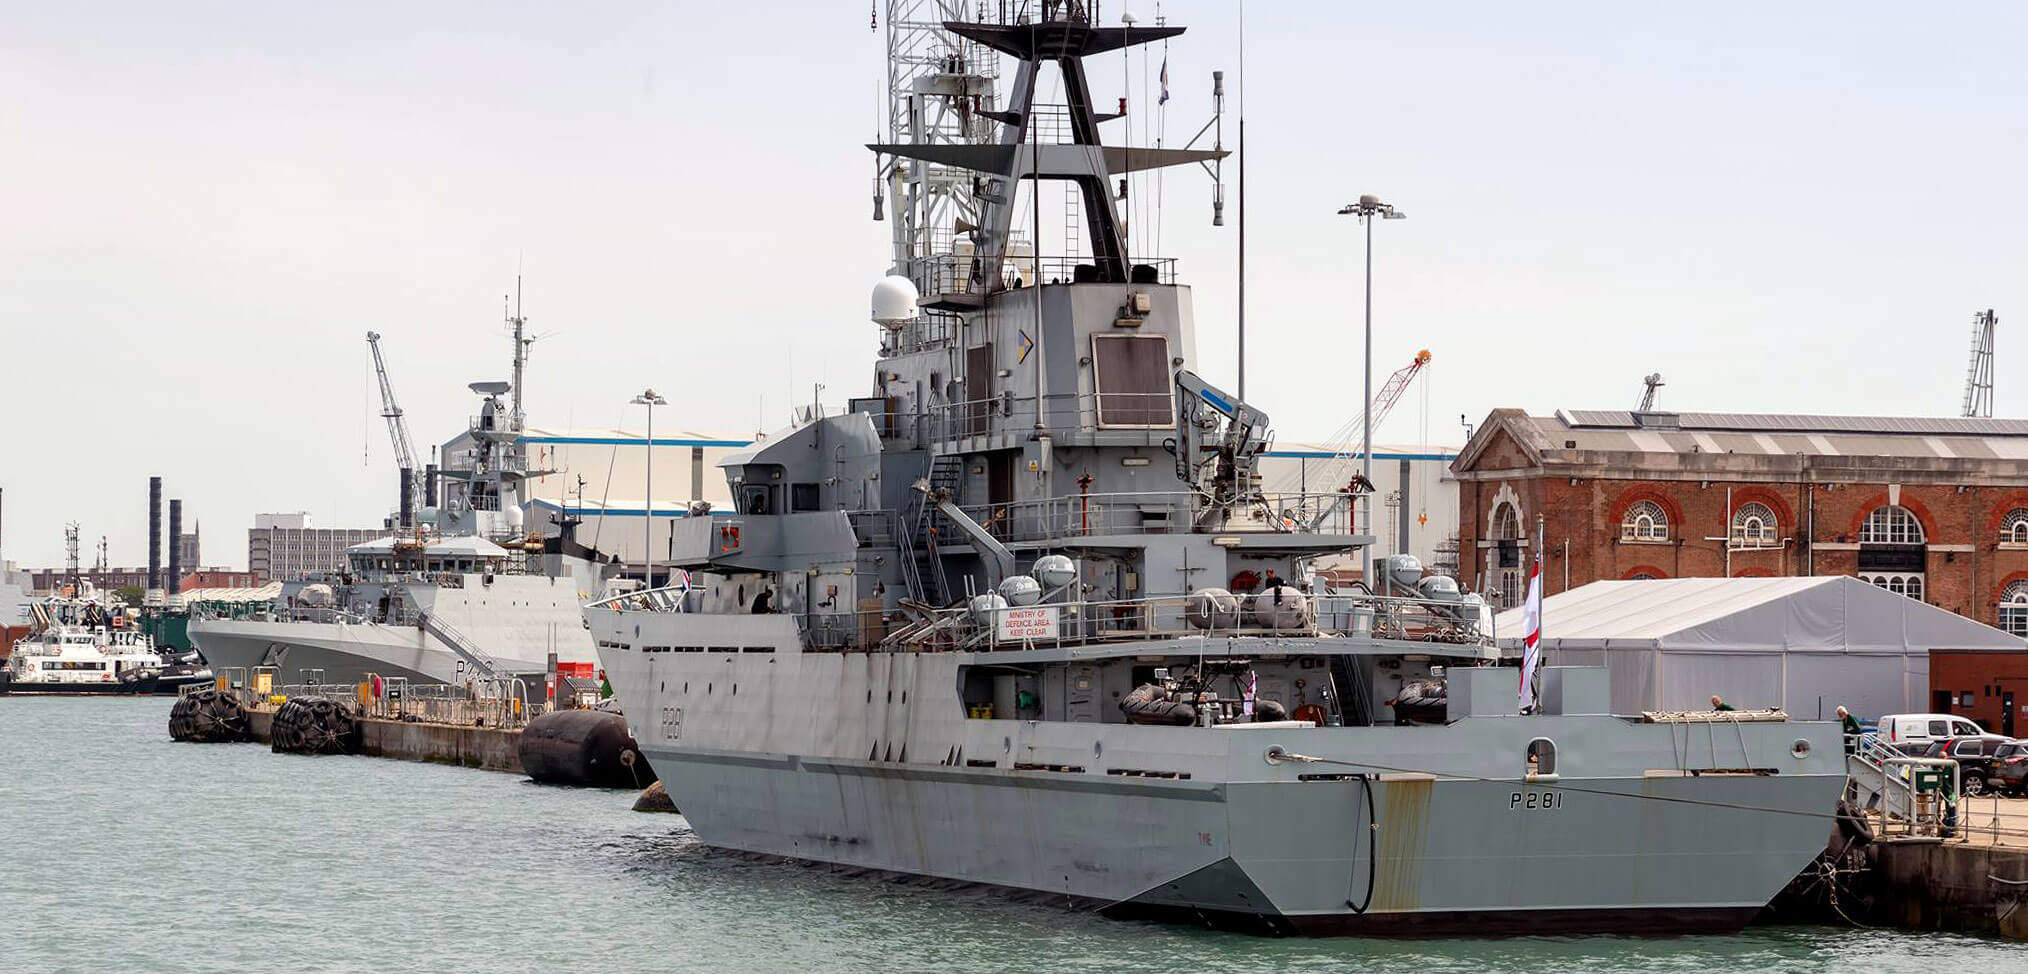 HMS Tyne and HMS Forth in Portsmouth